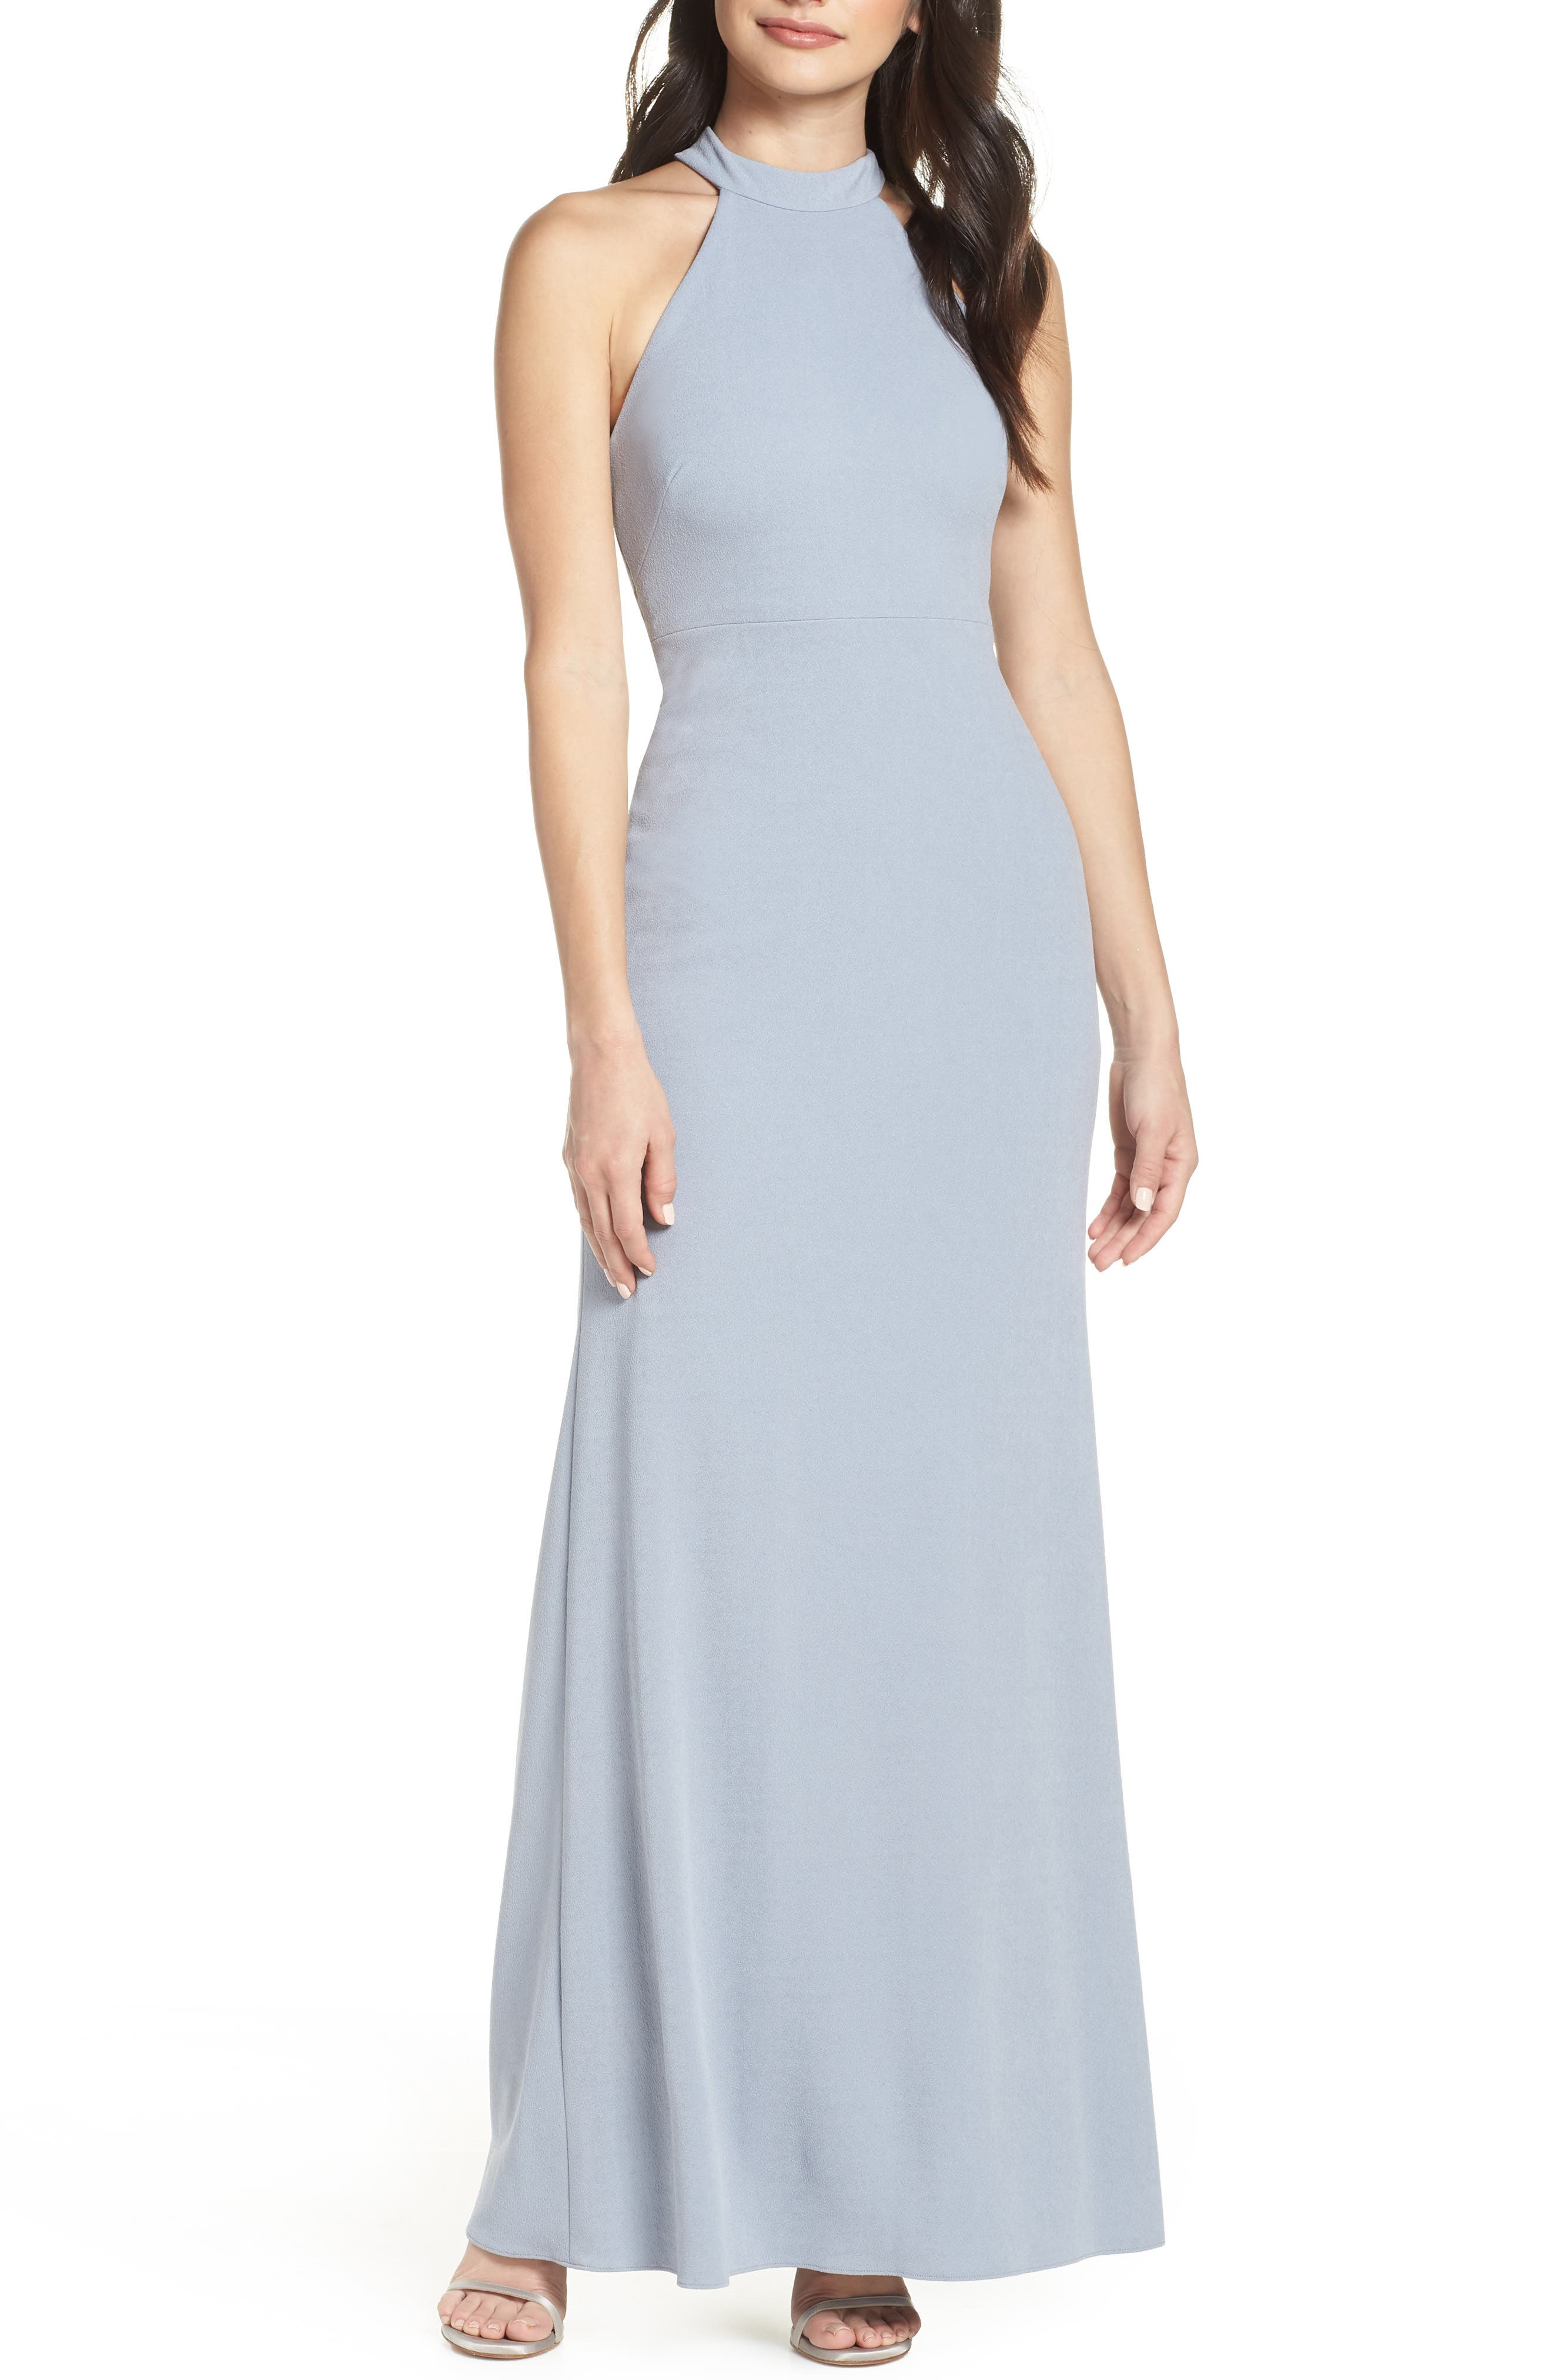 AFTER SIX, Halter Neck Stretch Crepe Evening Dress, Main thumbnail 1, color, PLATINUM